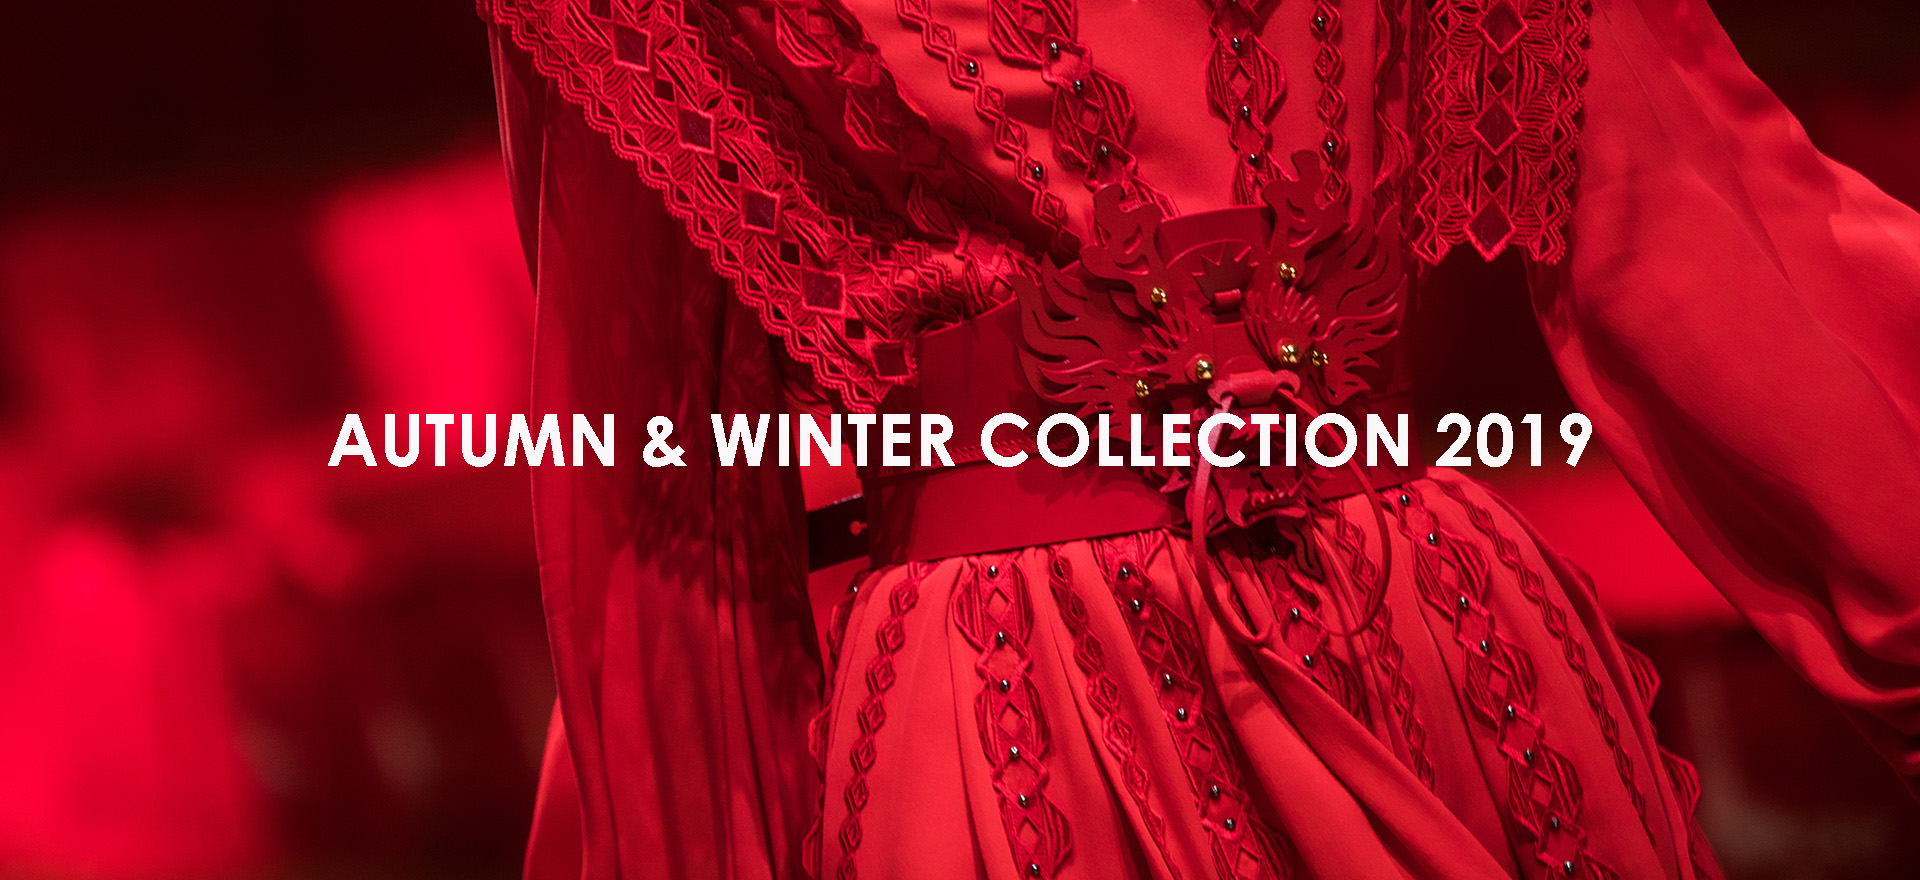 AUTUMN & WINTER COLLECTION 2019